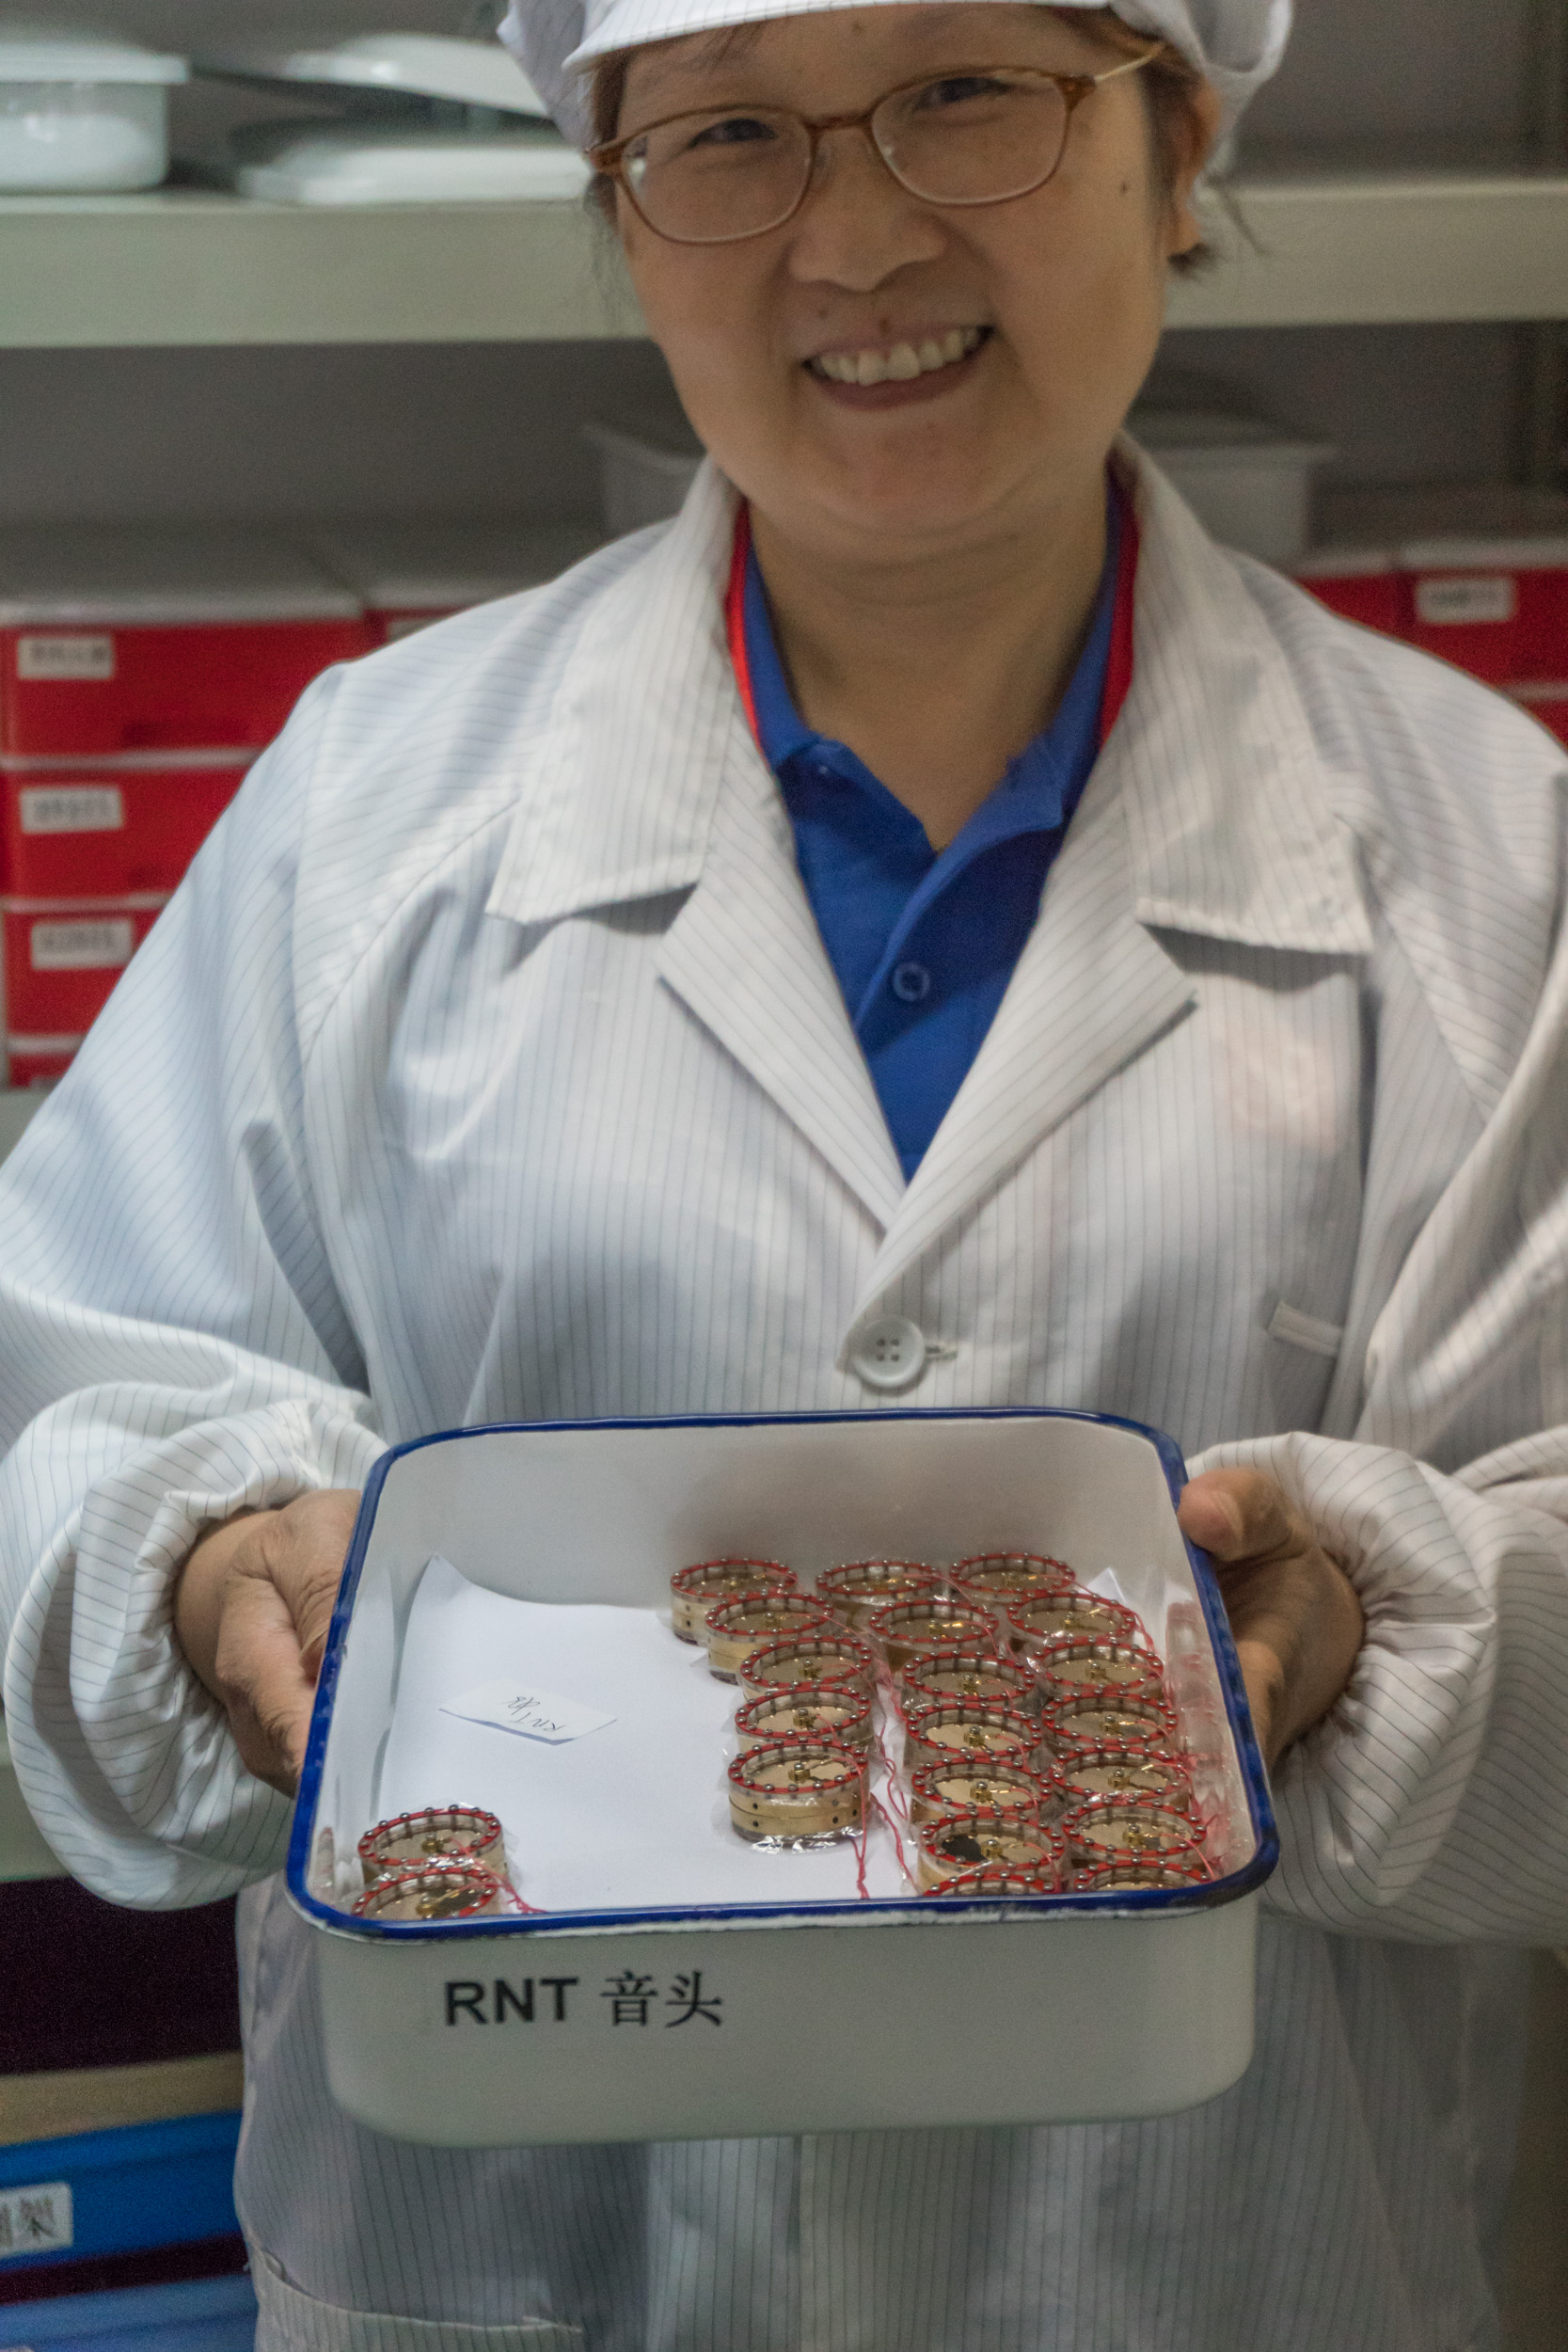 sE's Capsule Master Hongzu Xu holding a tray of RNT capsules, hand-made in our own capsule room.